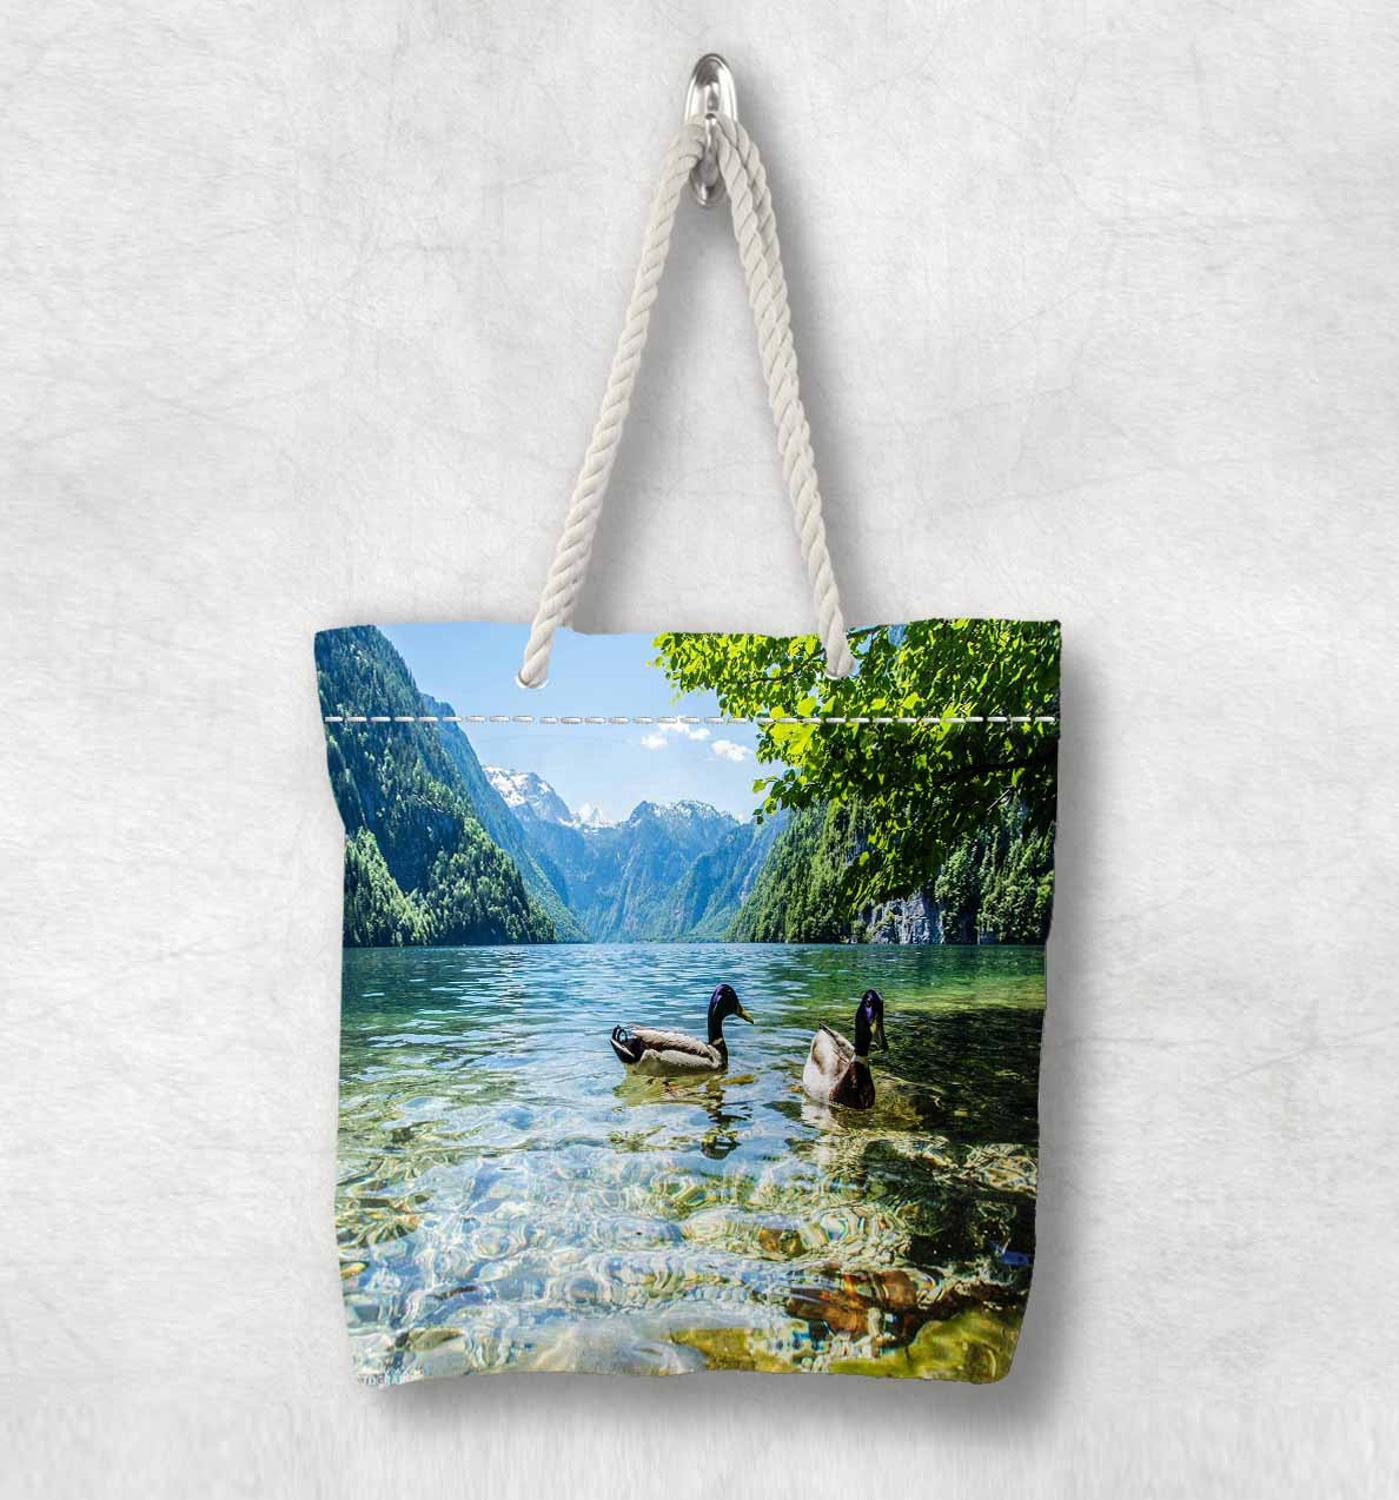 Else Blue Lake On Ducks Green Trees New Fashion White Rope Handle Canvas Bag Cotton Canvas Zippered Tote Bag Shoulder Bag